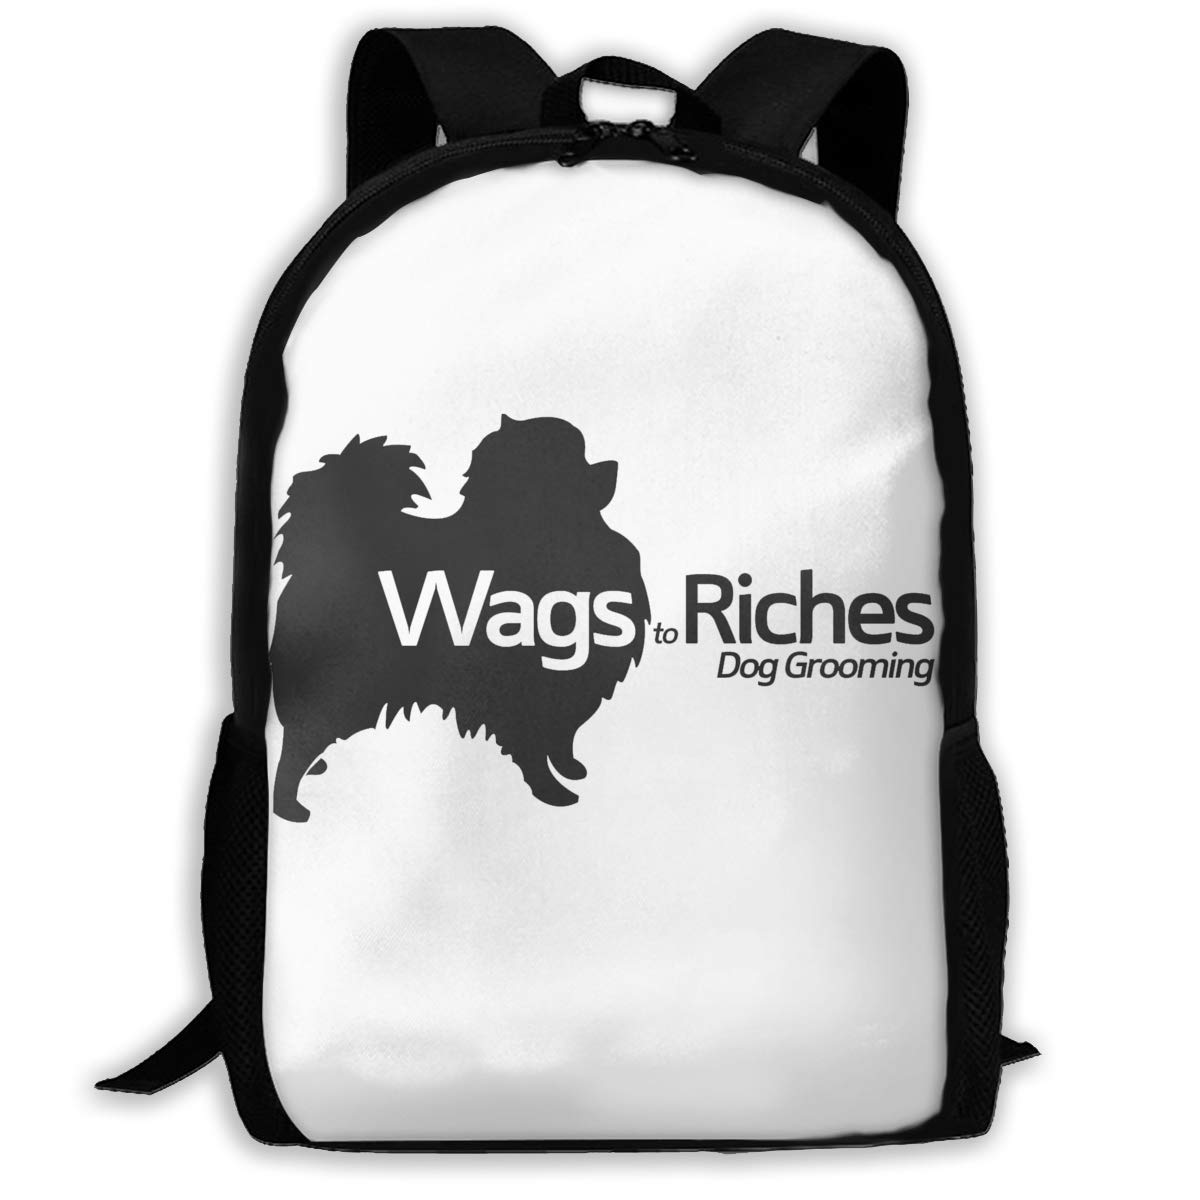 Backpacks Girl\'s Shoulder Bag Bookbags School Season Wags to Riches Dog Grooming Traveling Bags